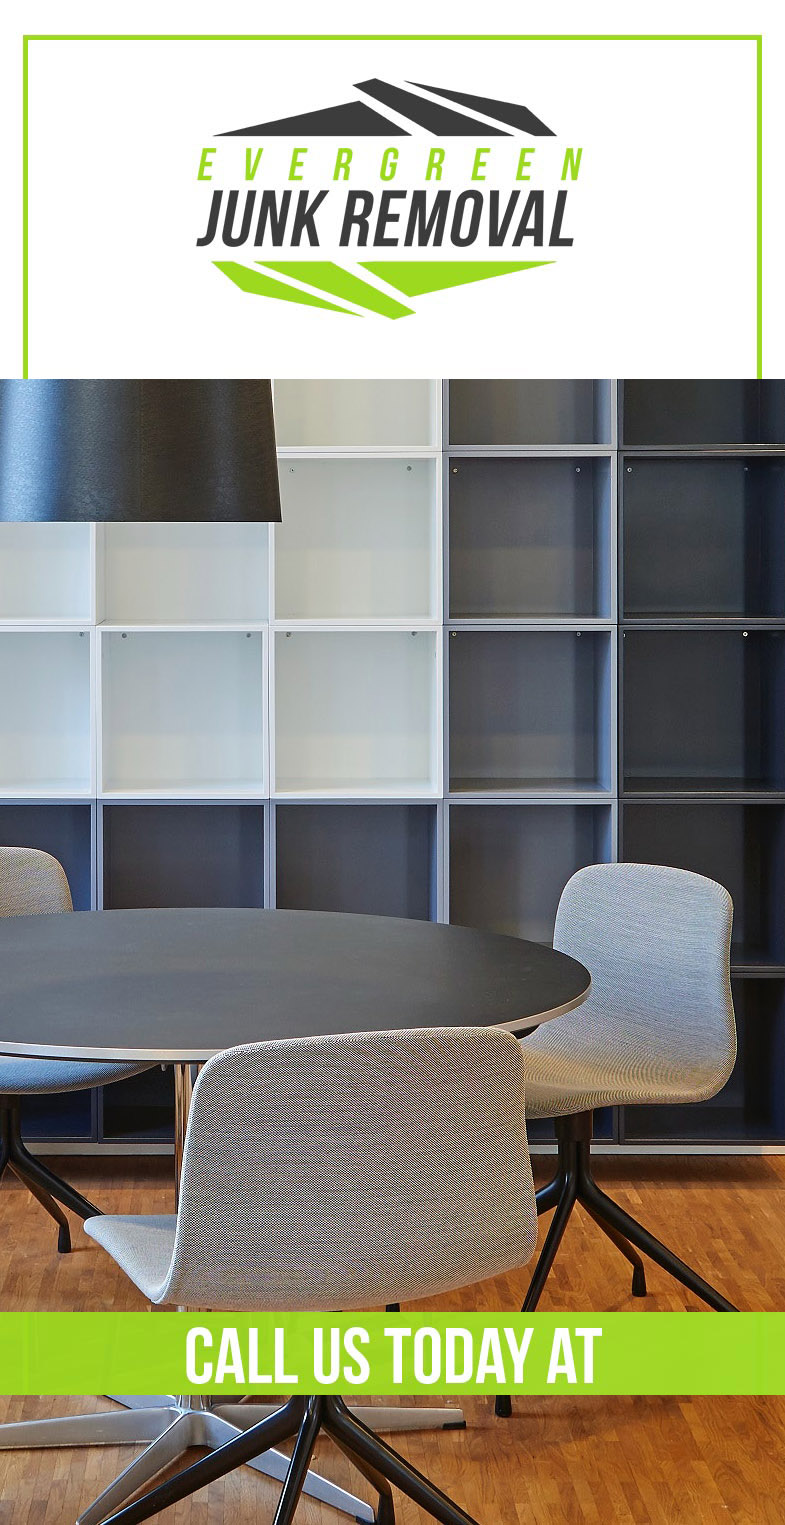 Office Cleaning Services Lauderhill FL